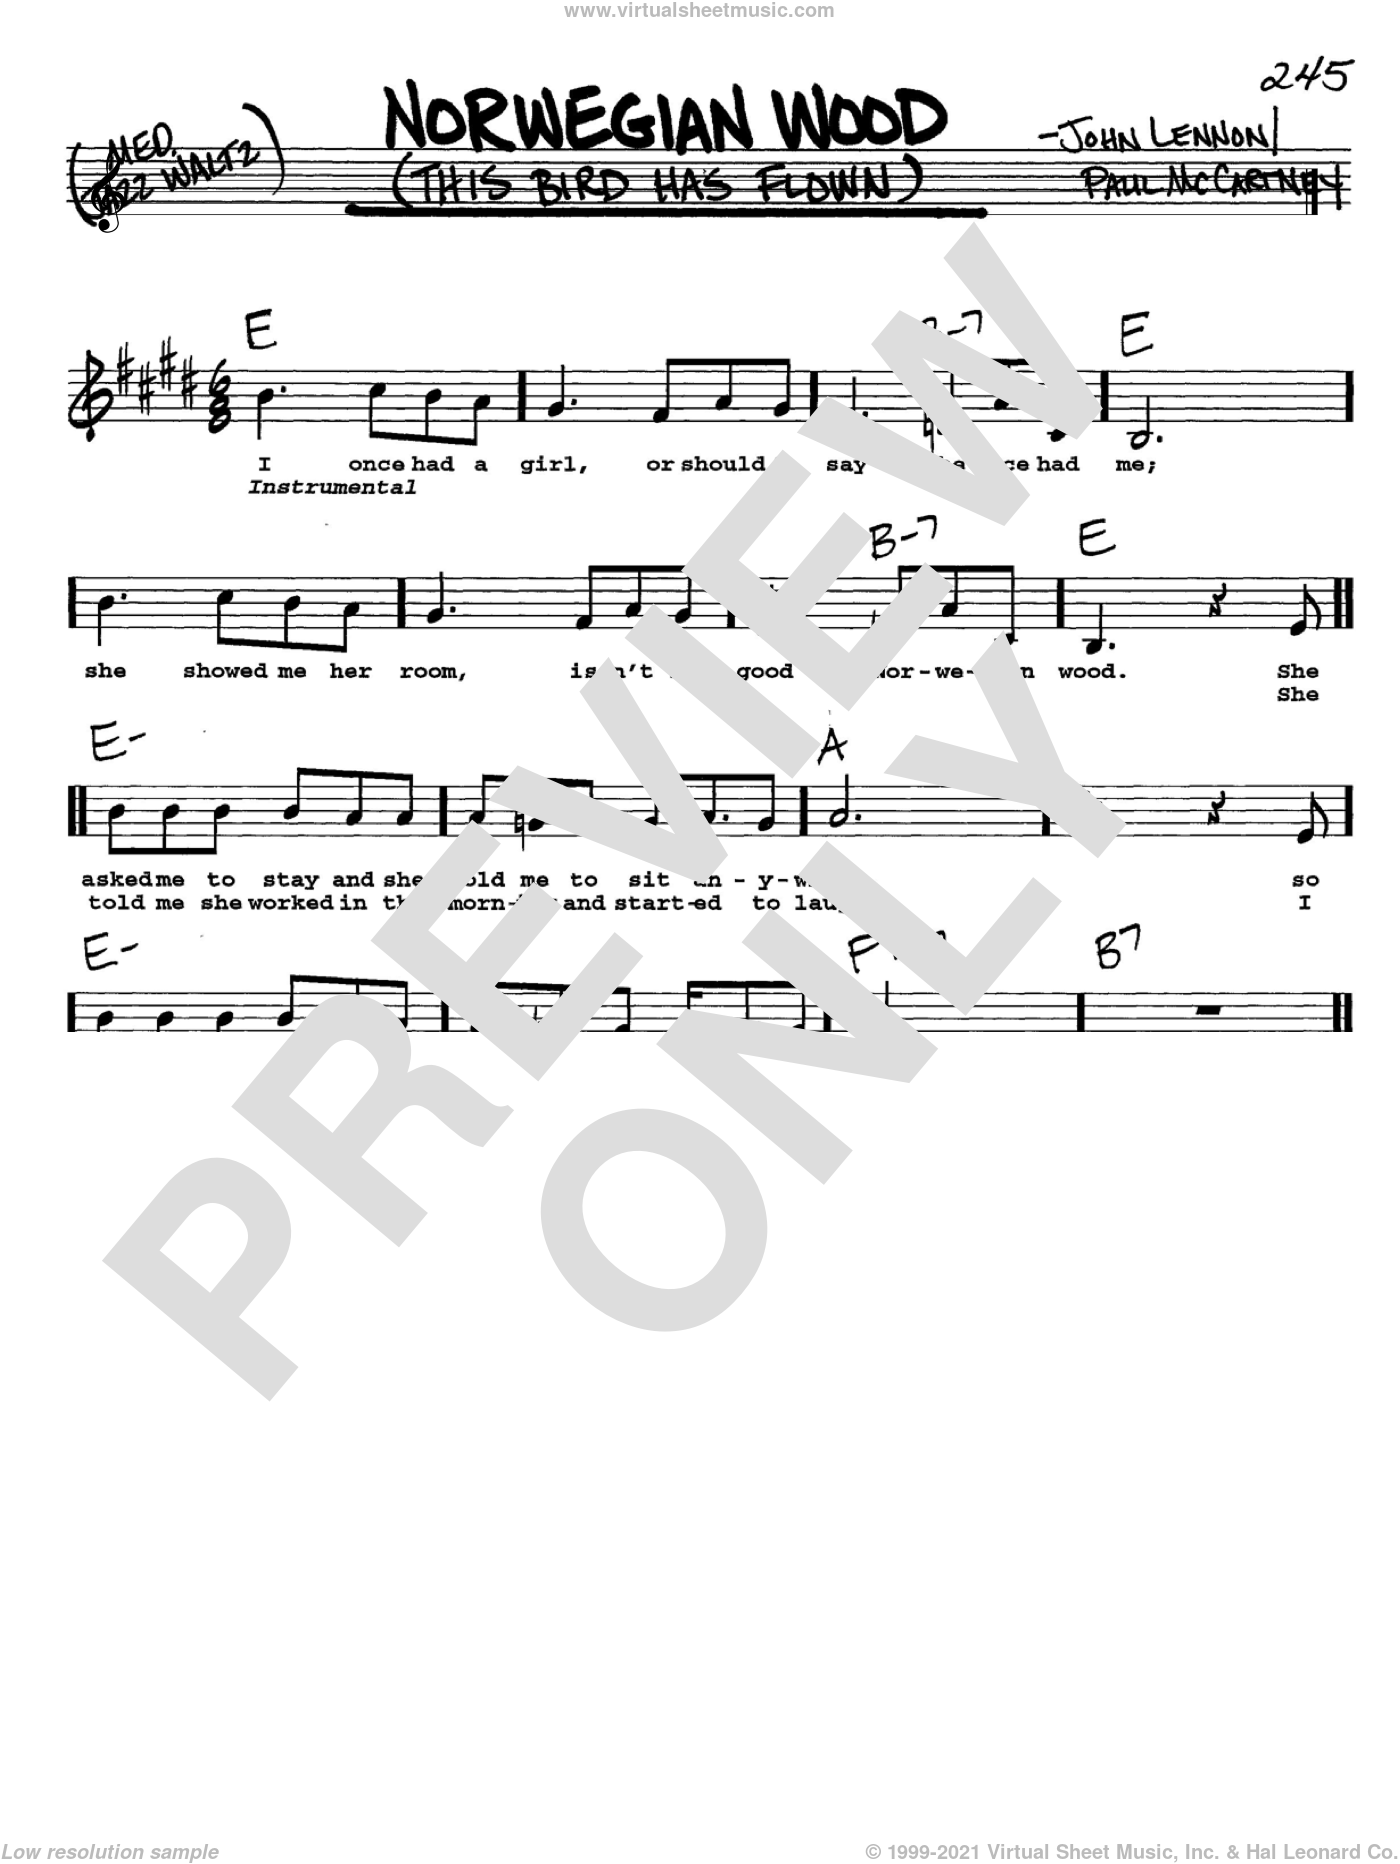 Norwegian Wood (This Bird Has Flown) sheet music for voice and other instruments  by The Beatles, John Lennon and Paul McCartney, intermediate skill level